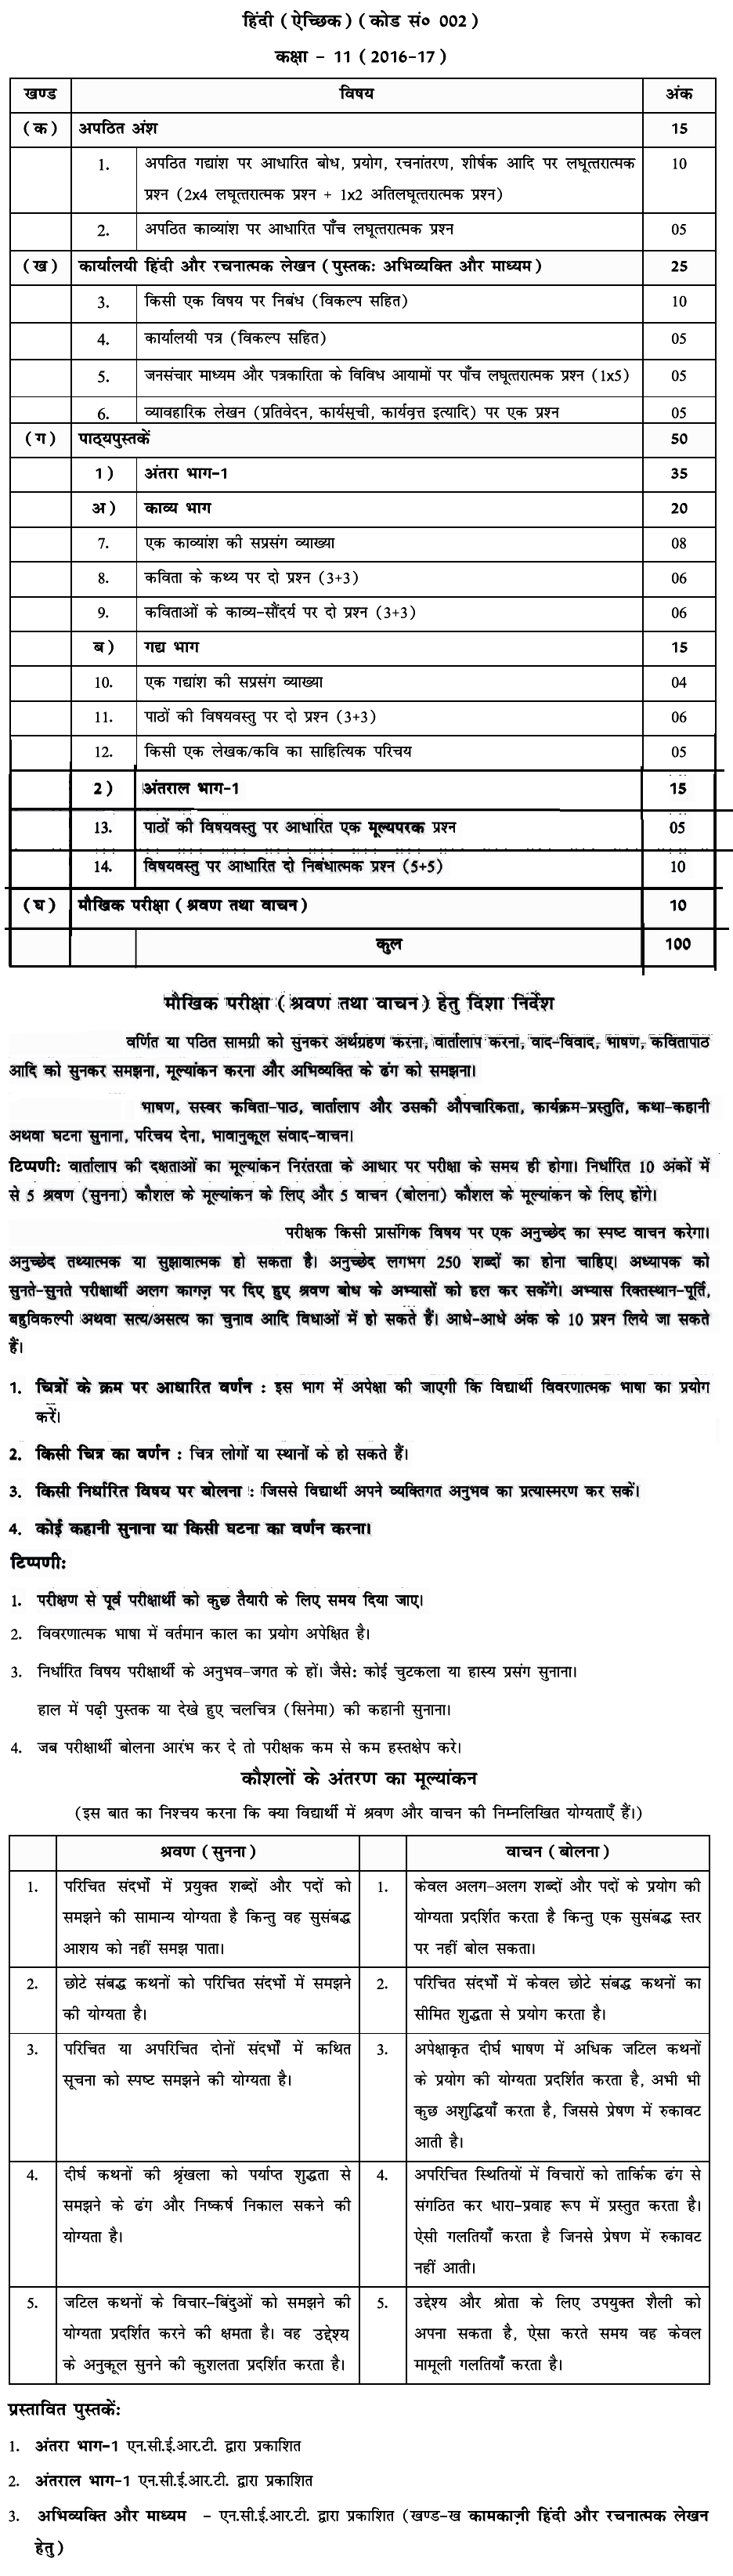 CBSE-Class-11-Hindi-Elective-Syllabus